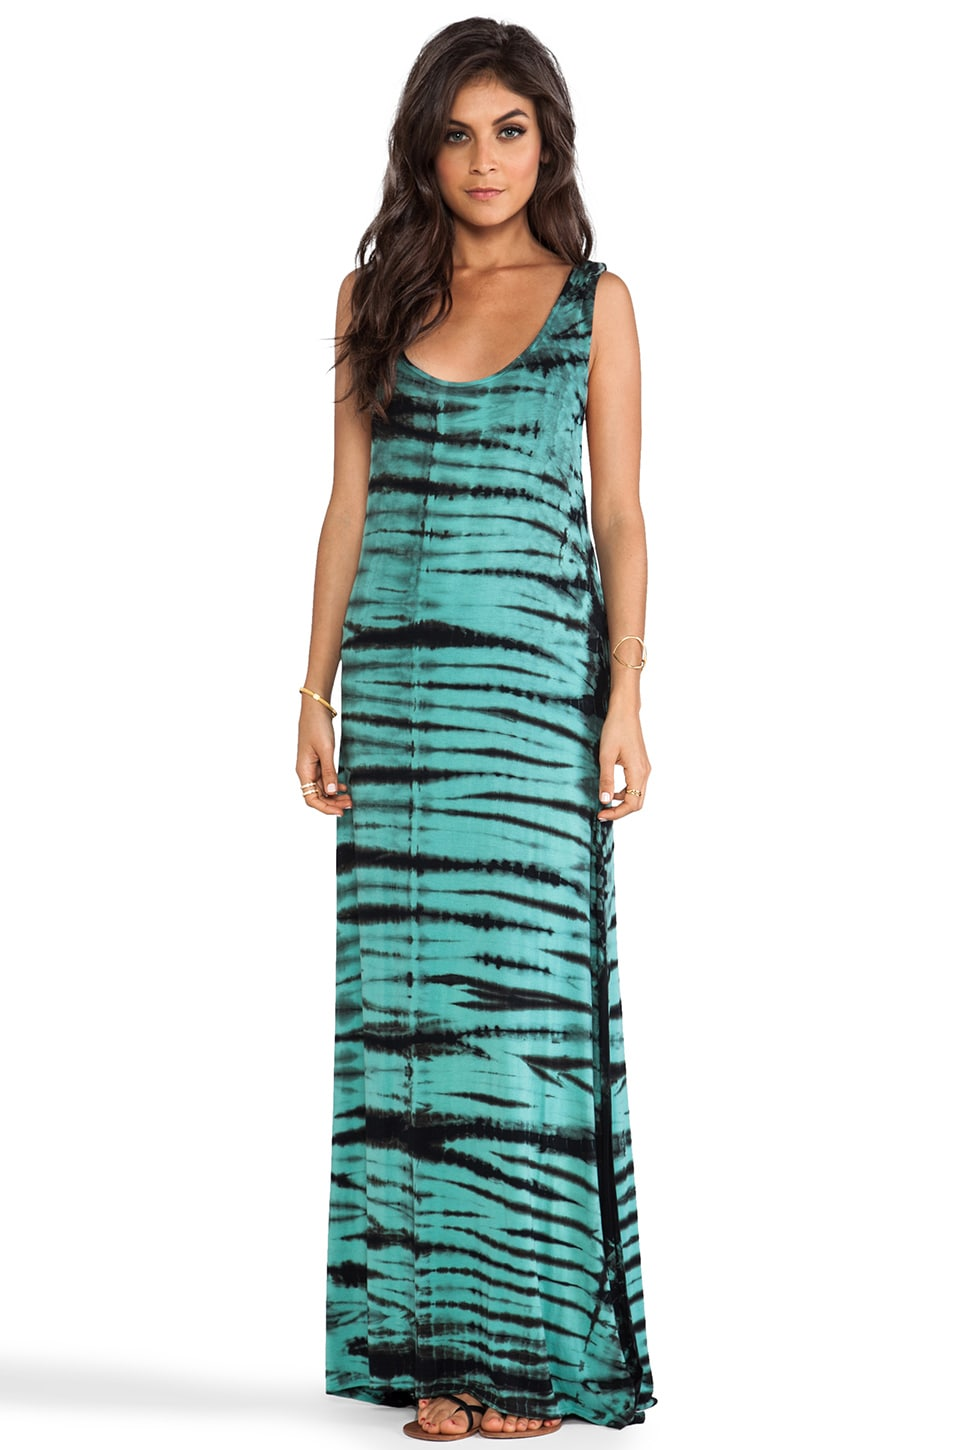 Chaser Deep Armhole Maxi Dress in Underwater Tie Dye